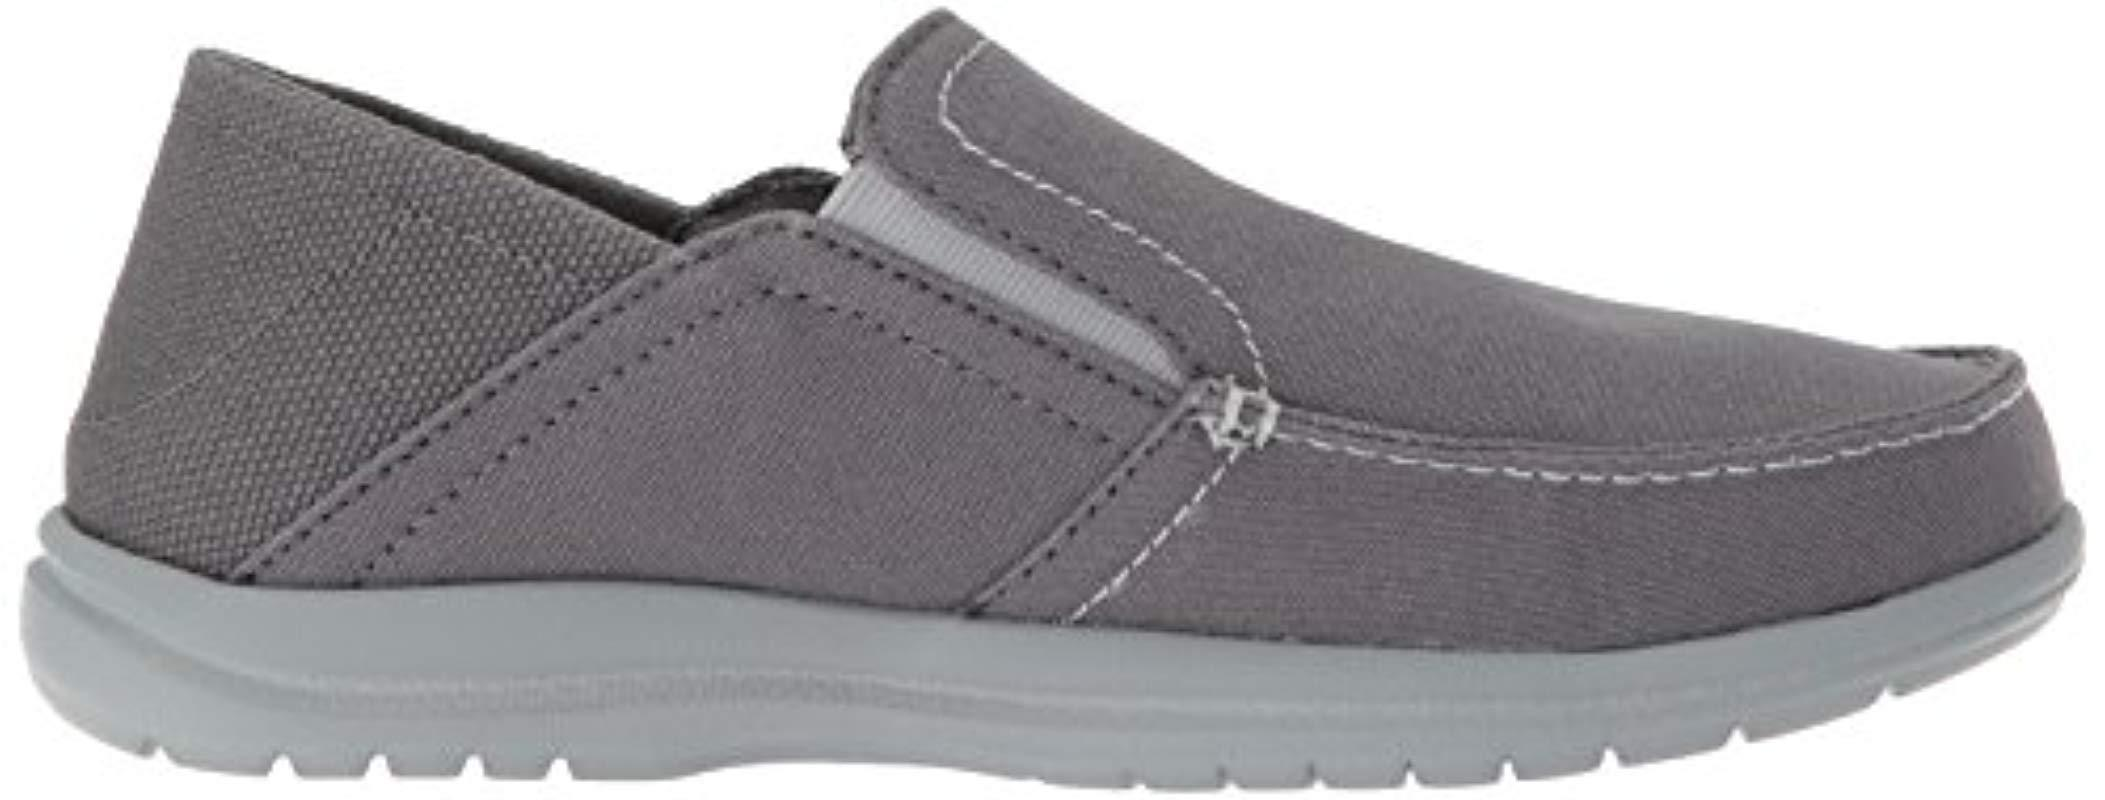 Crocs�?Cotton Santa Cruz Convertible Slip On Loafer Casual Shoes in Light Grey/Slate Grey (Grey) for Men